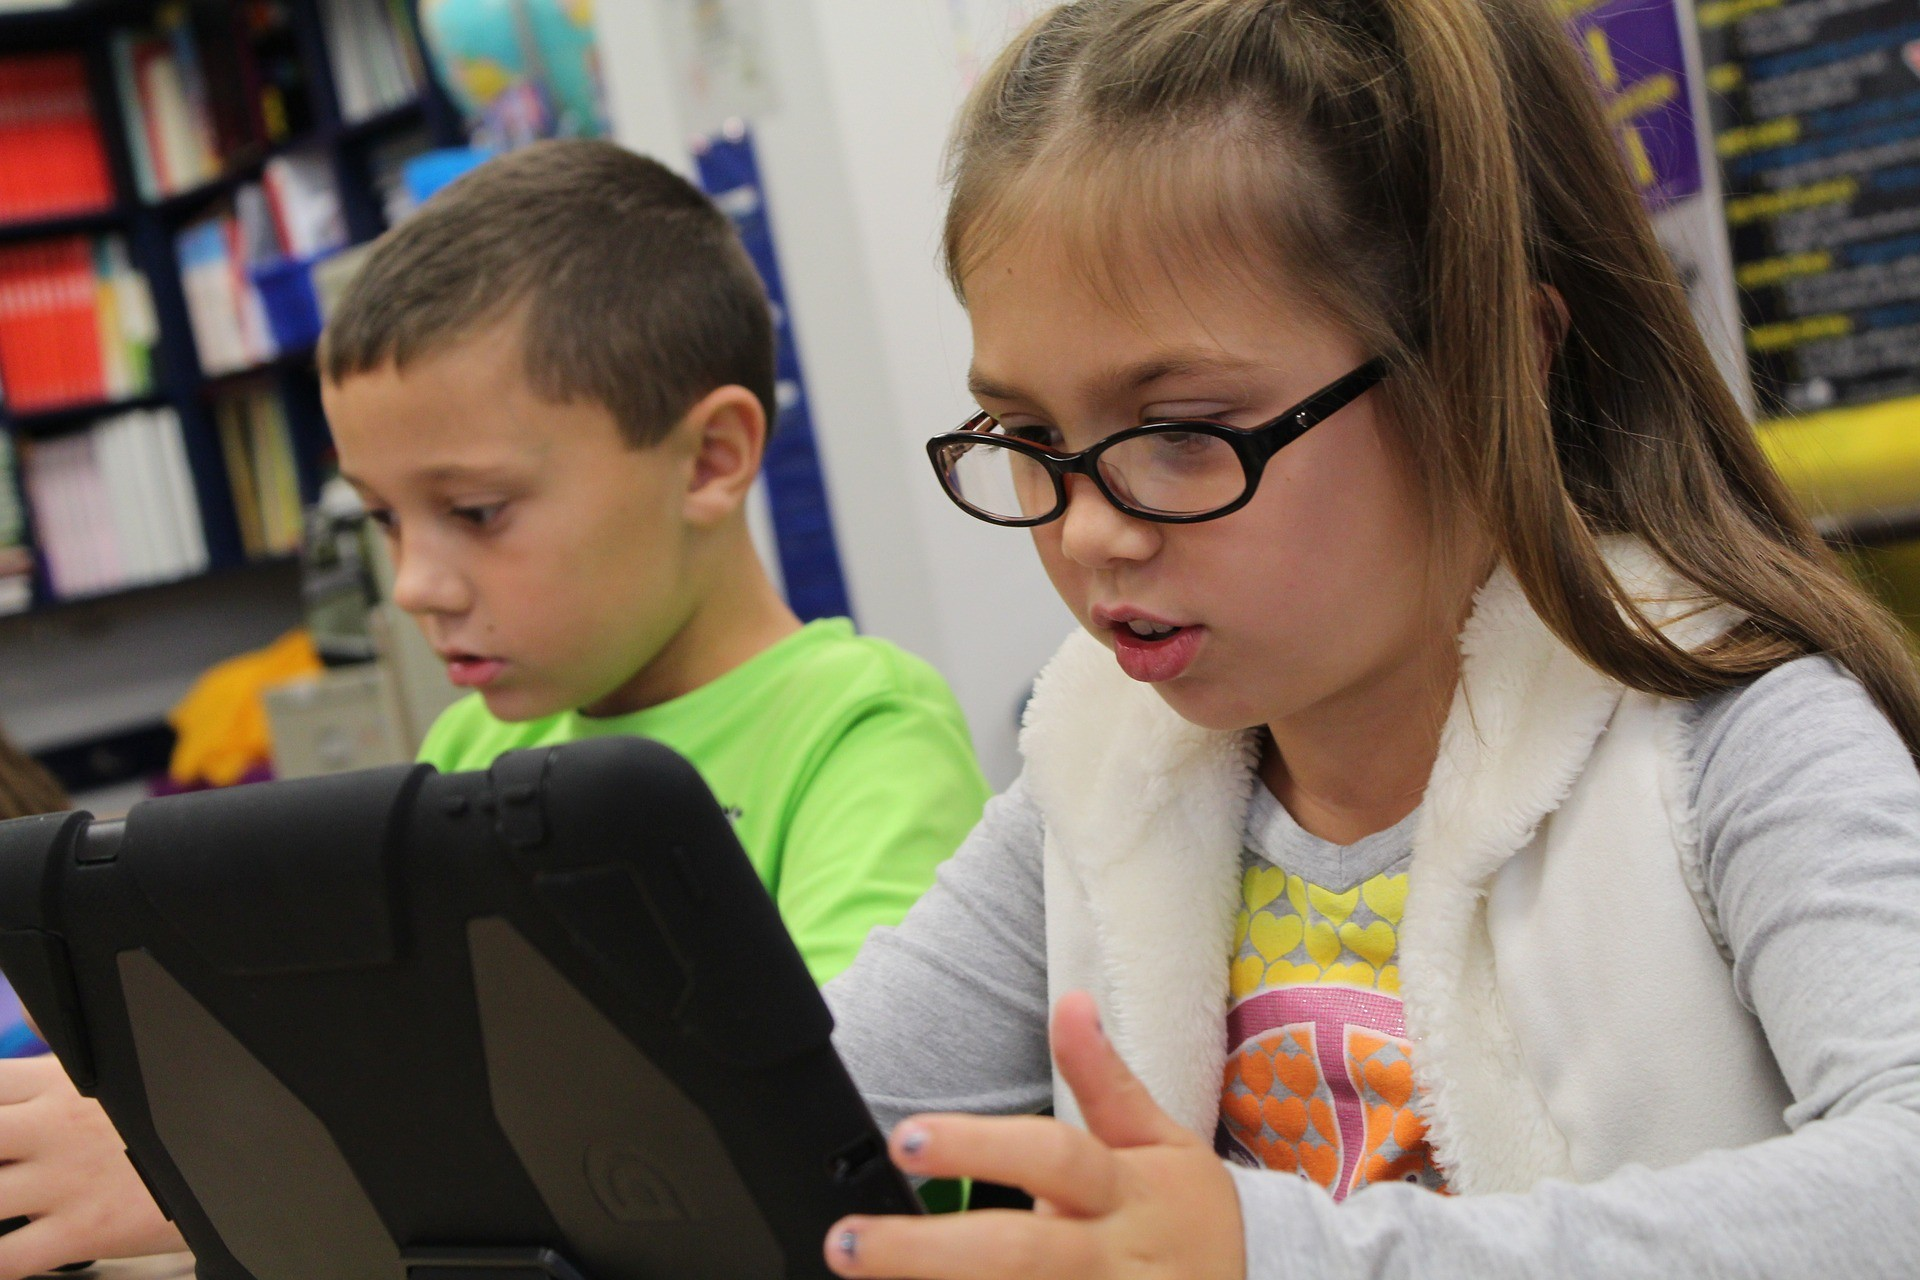 Two children work on tablets in a classroom.